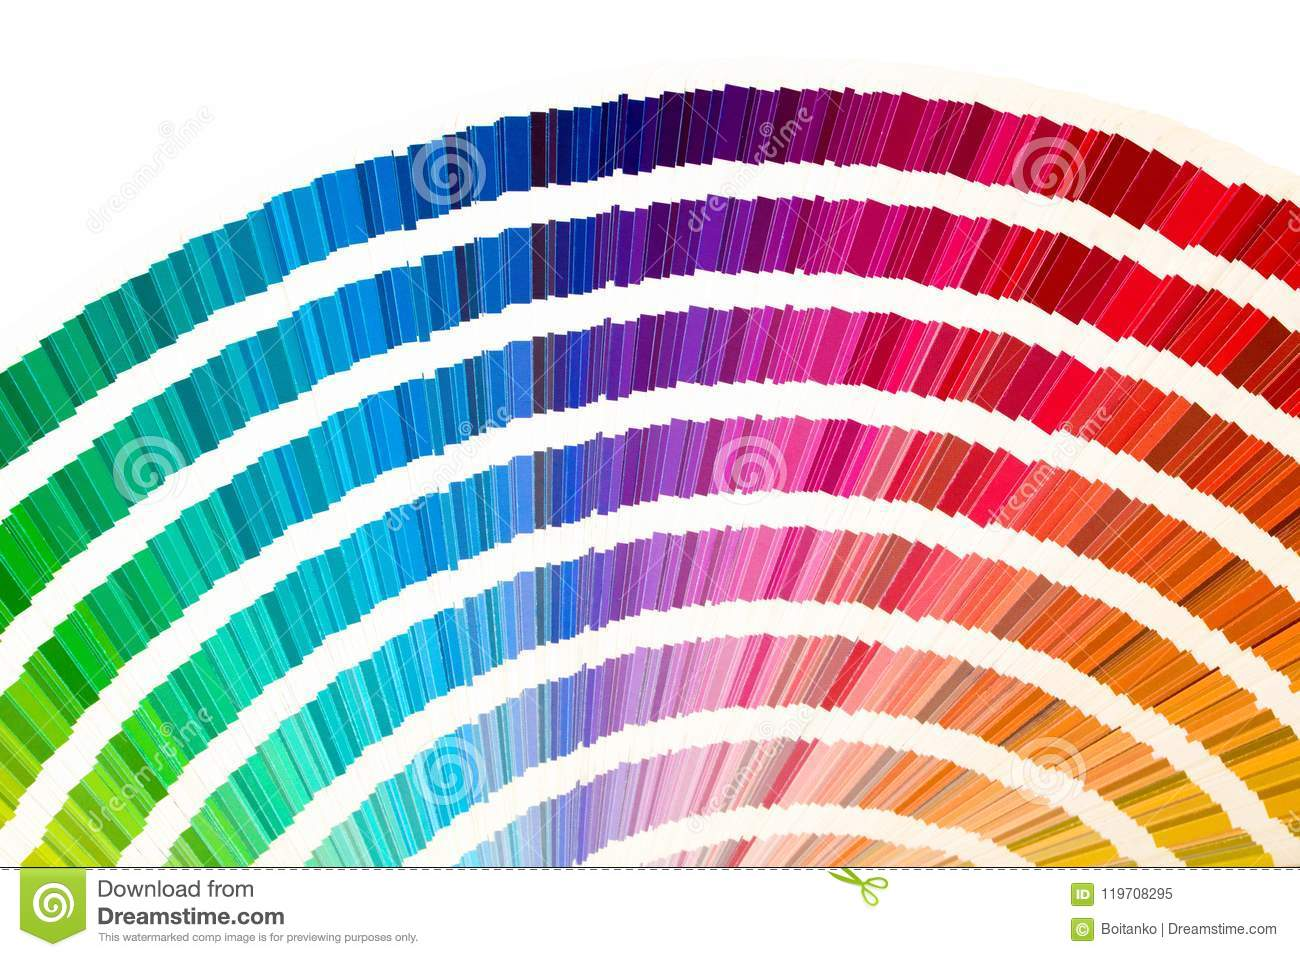 rainbow sample colors catalogue in many shades of colors or spectrum